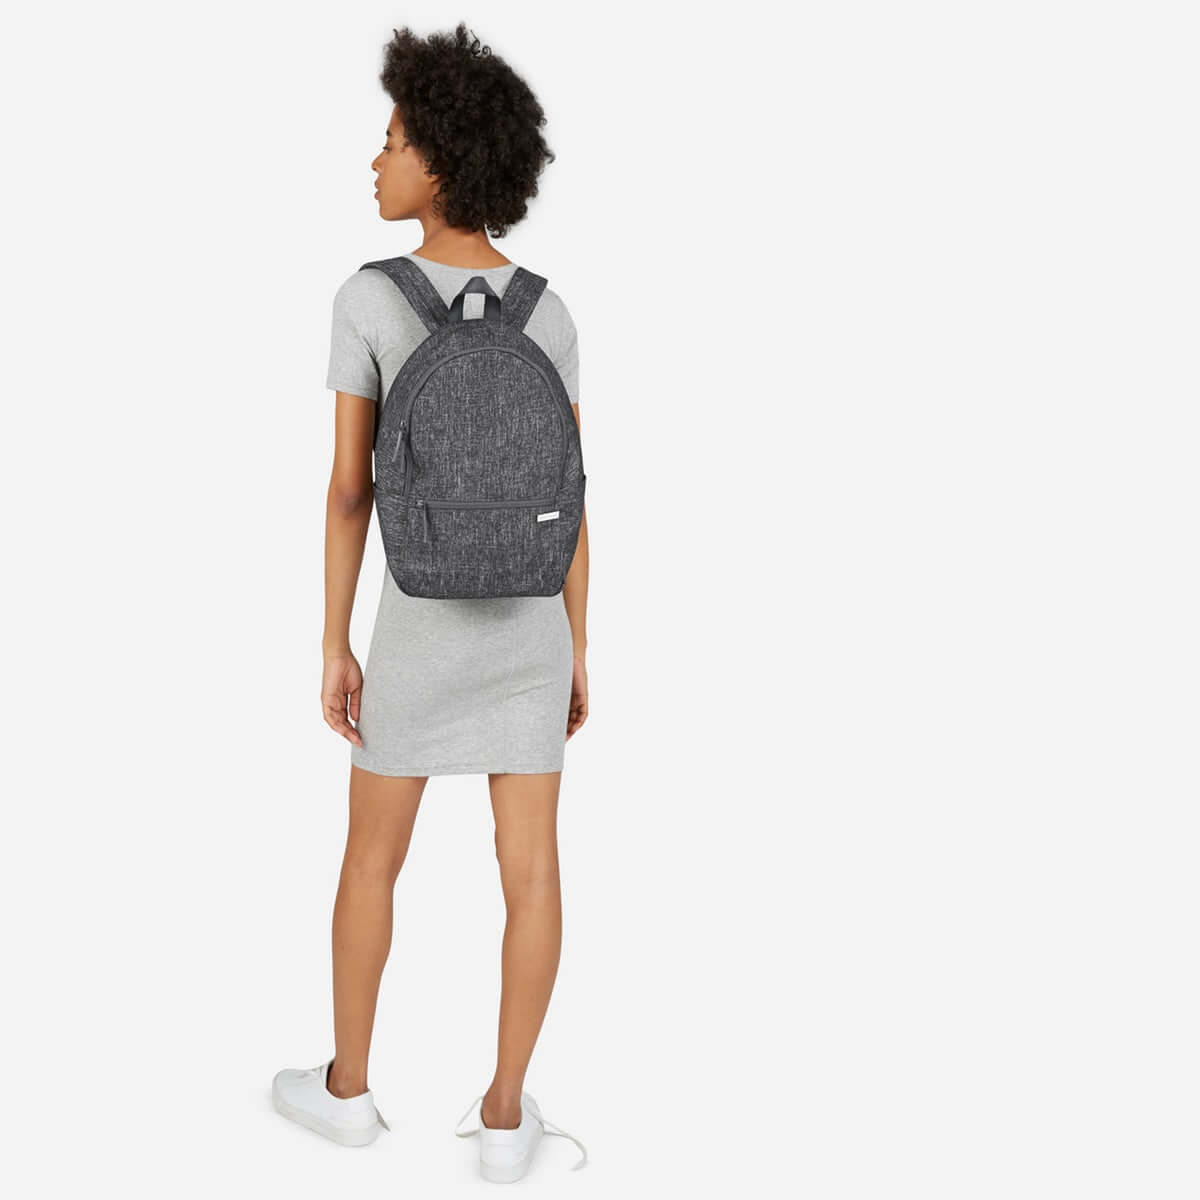 The Street Nylon Zip Backpack - Small – $38. A minimalist, ethical backpack for a price you can't afford to miss